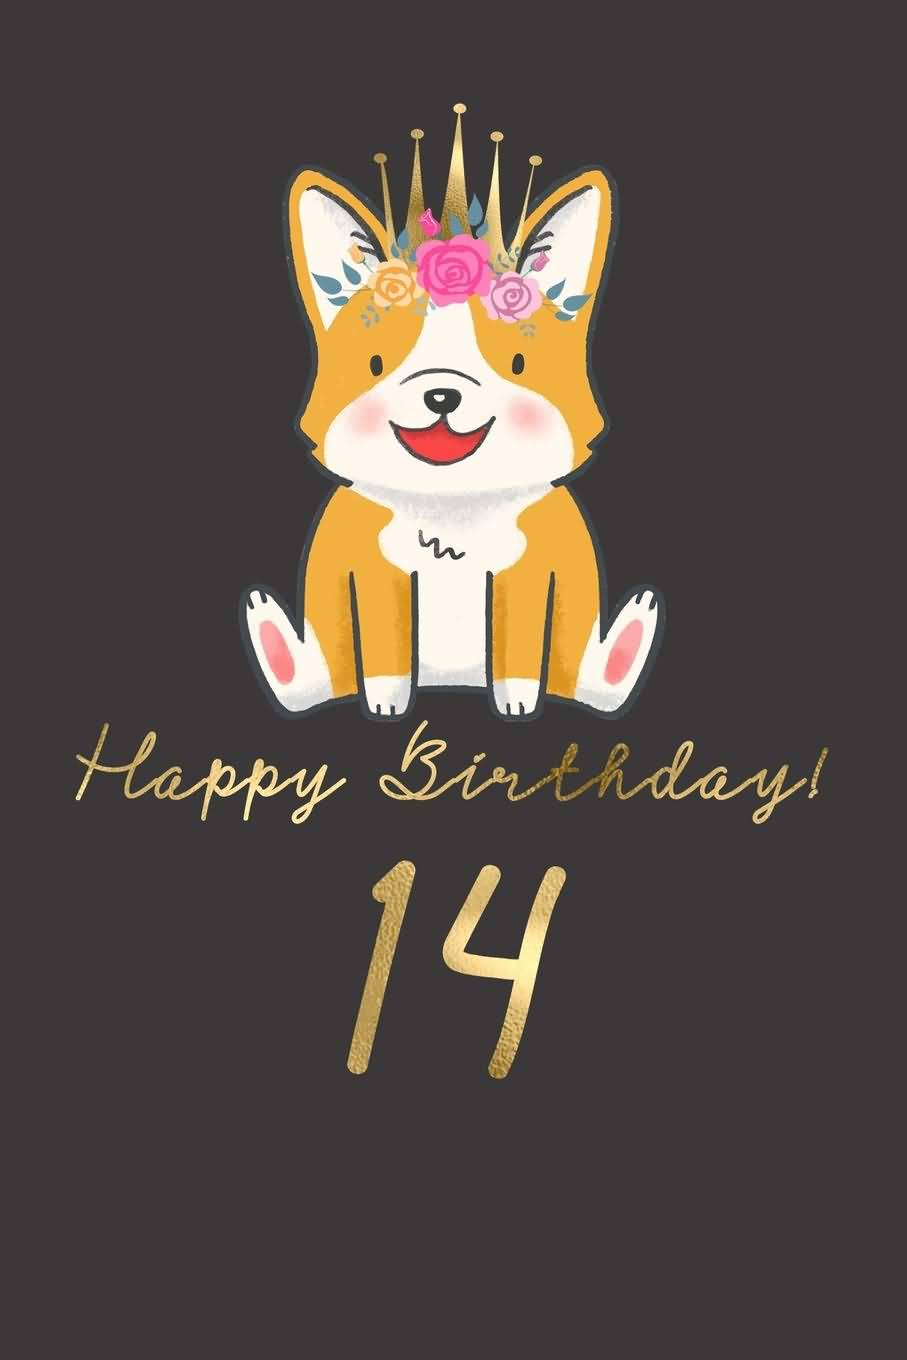 Cool Happy 14th Birthday Message For Sharing